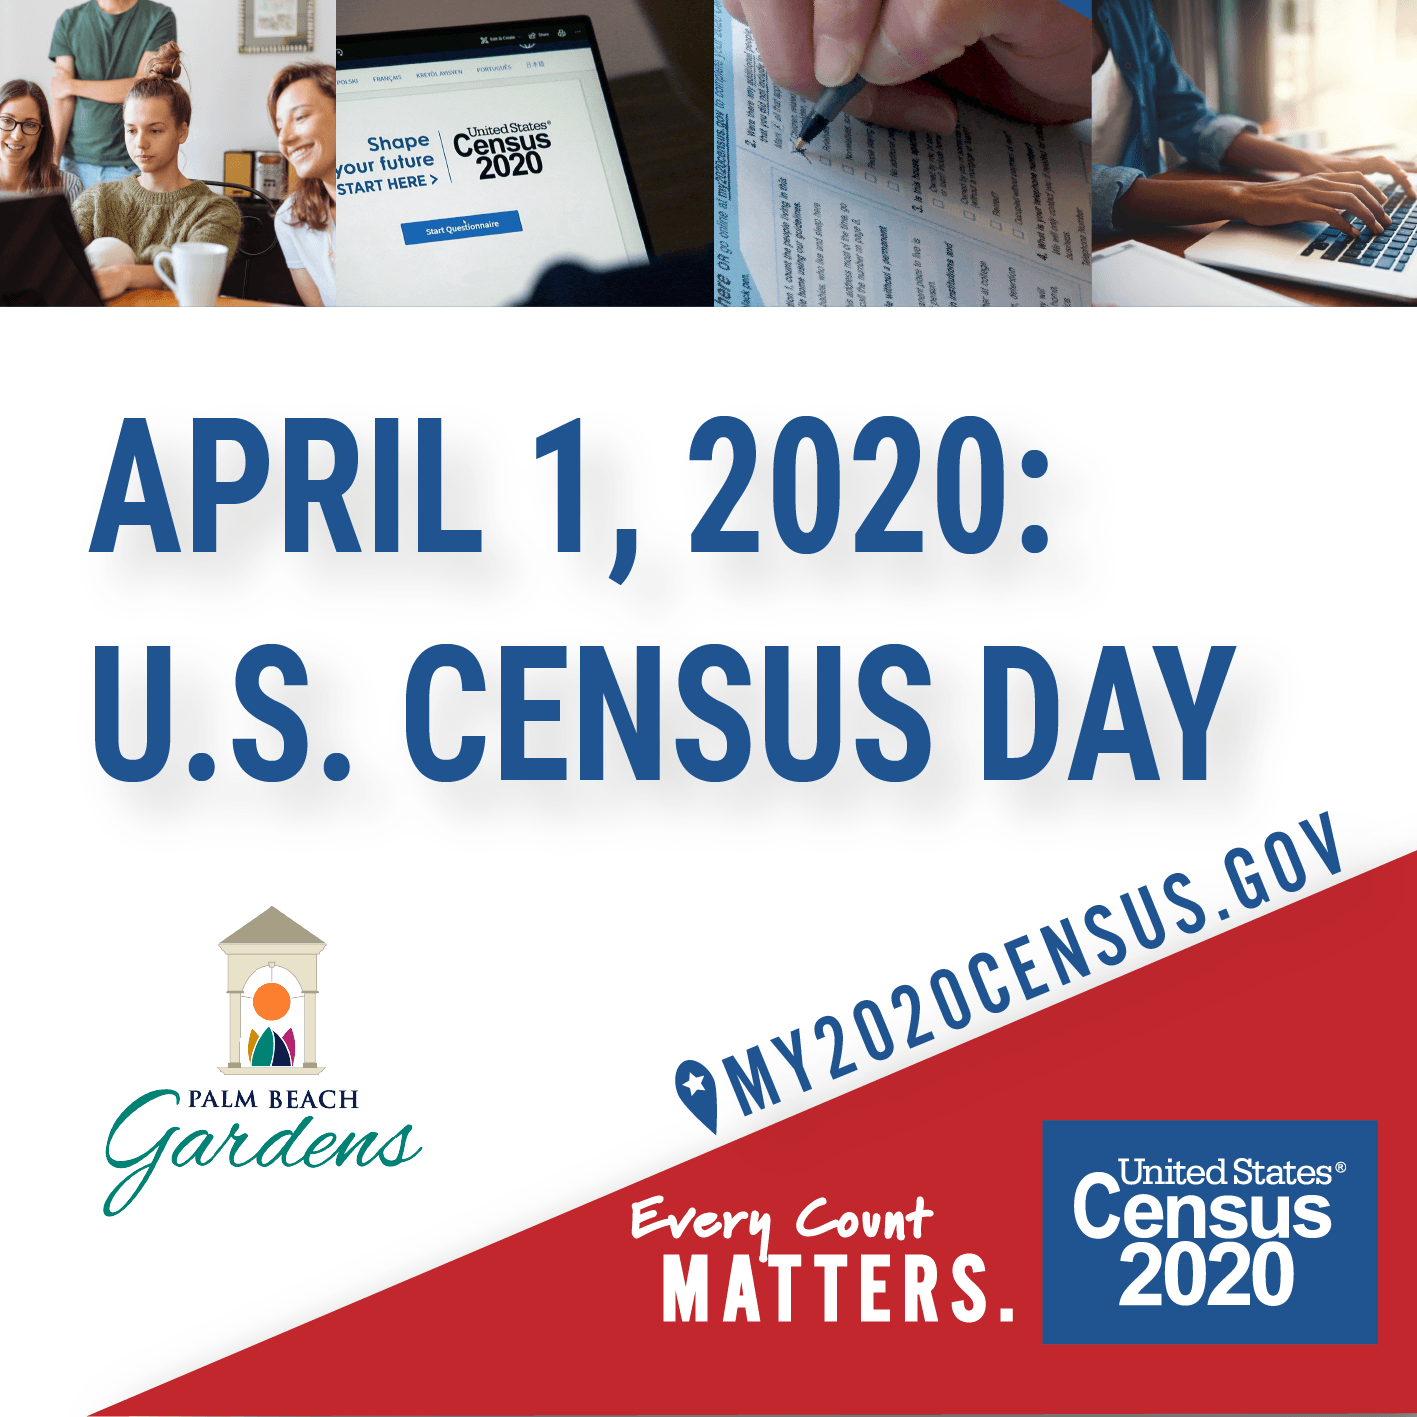 Census Day April 1